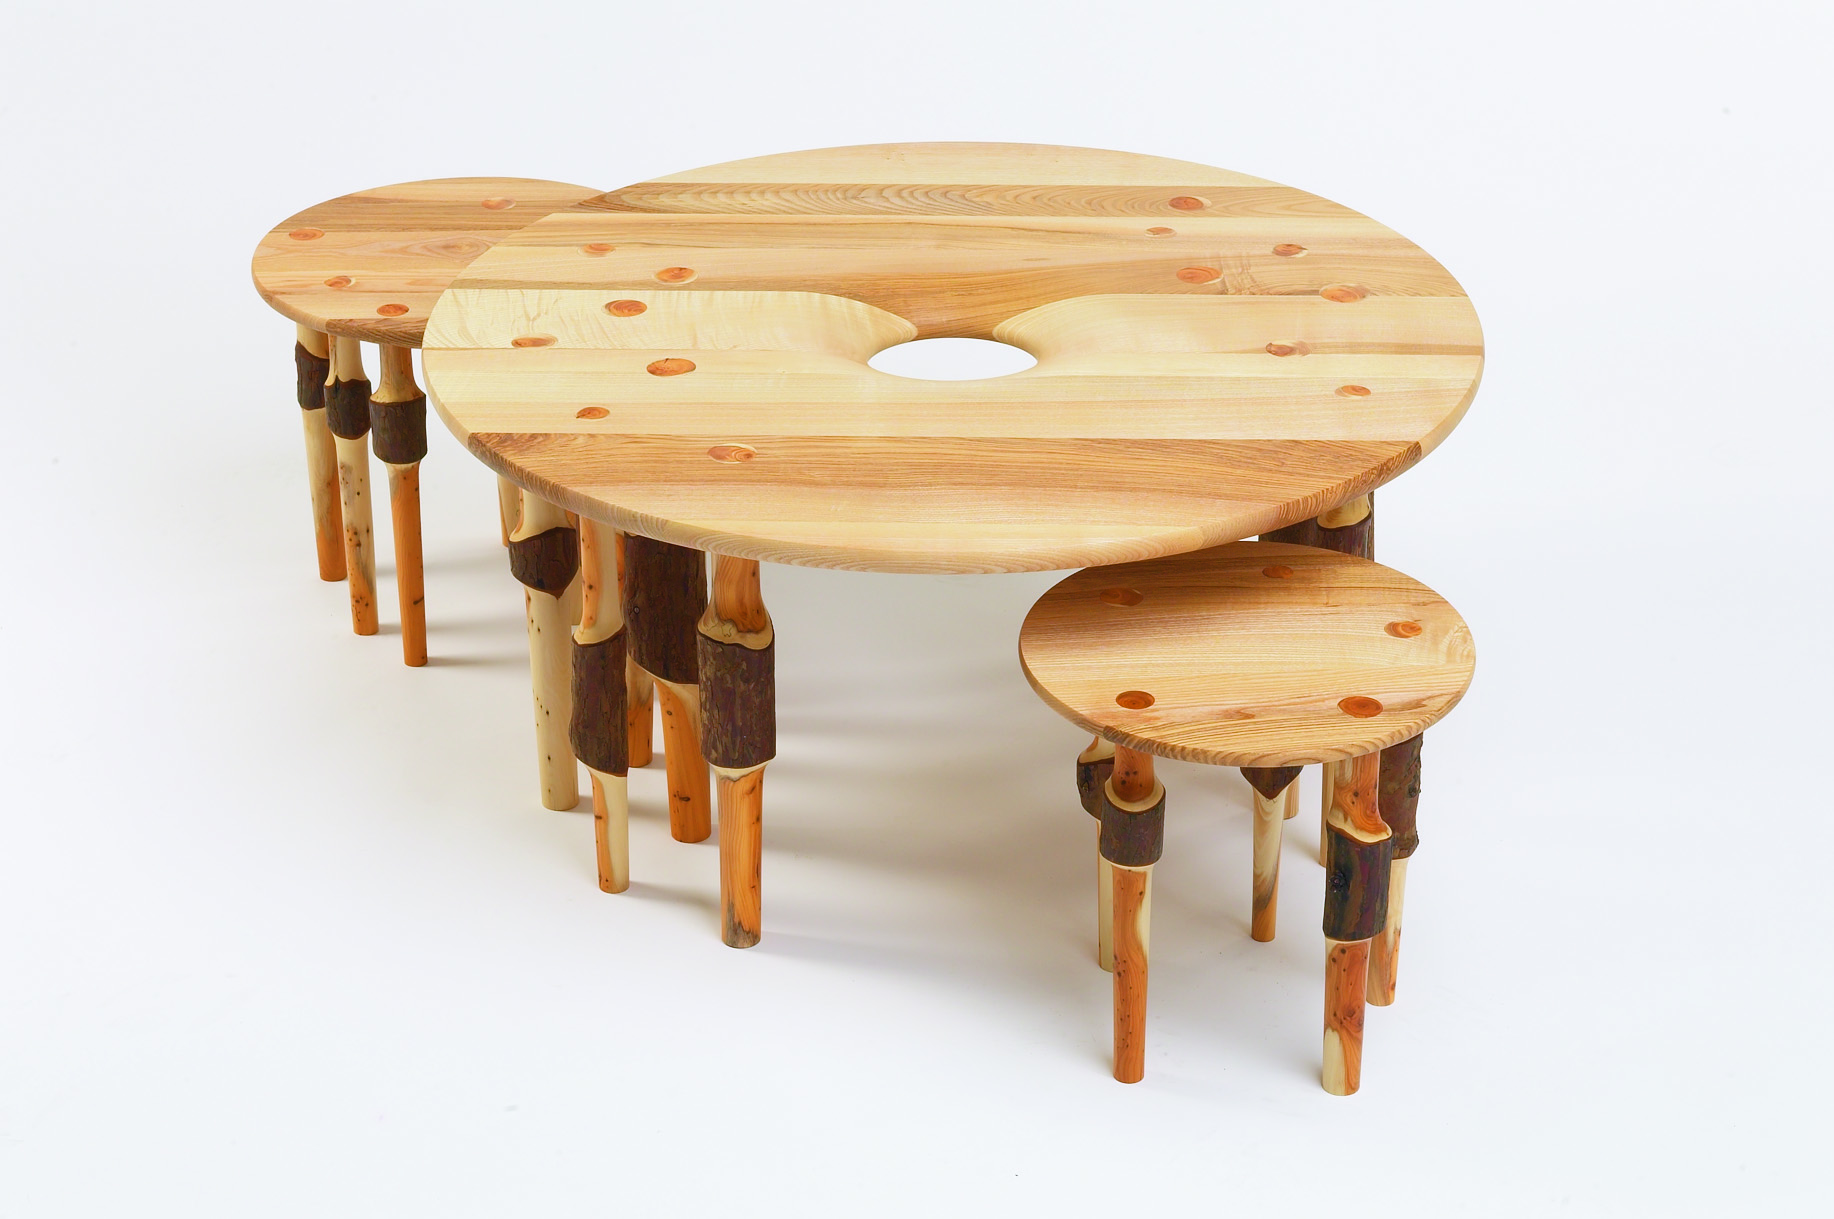 Forest tables